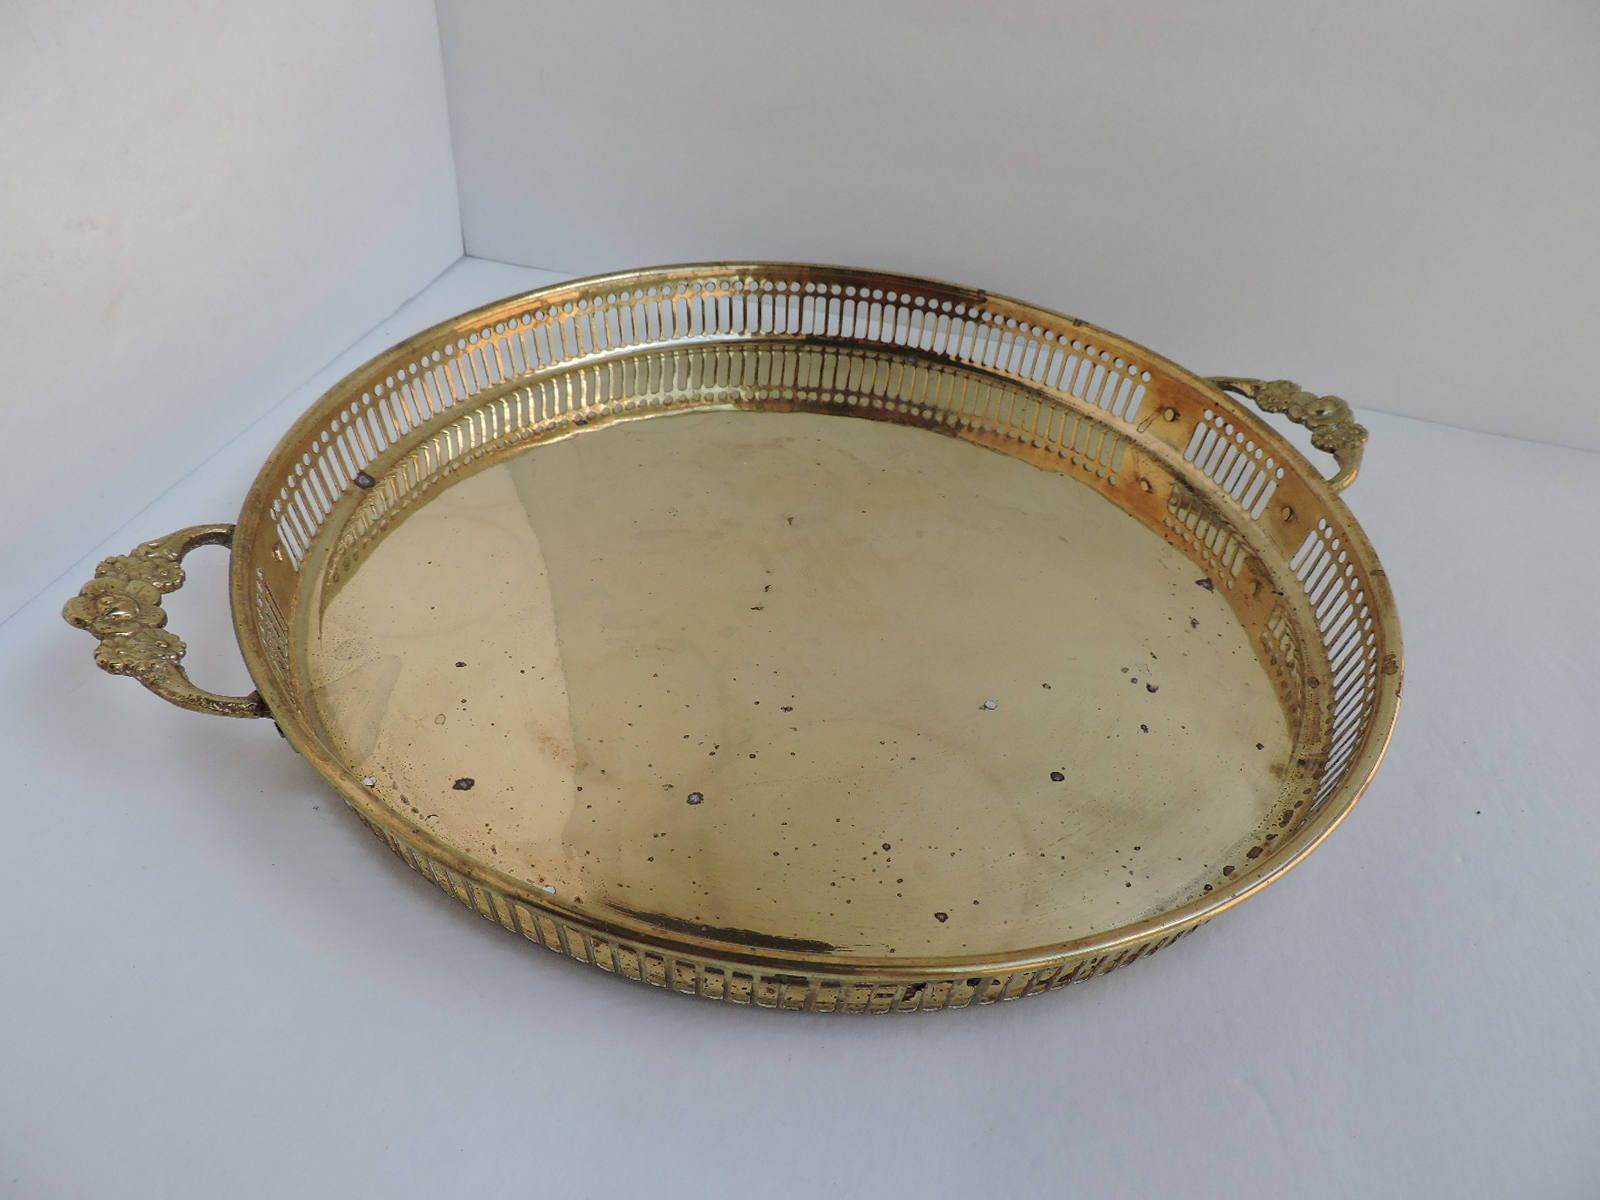 Round Brass Tray With Handles Reticulated Vintage Brass Etsy Brass Tray Vintage Brass Vintage Trays [ 1200 x 1600 Pixel ]